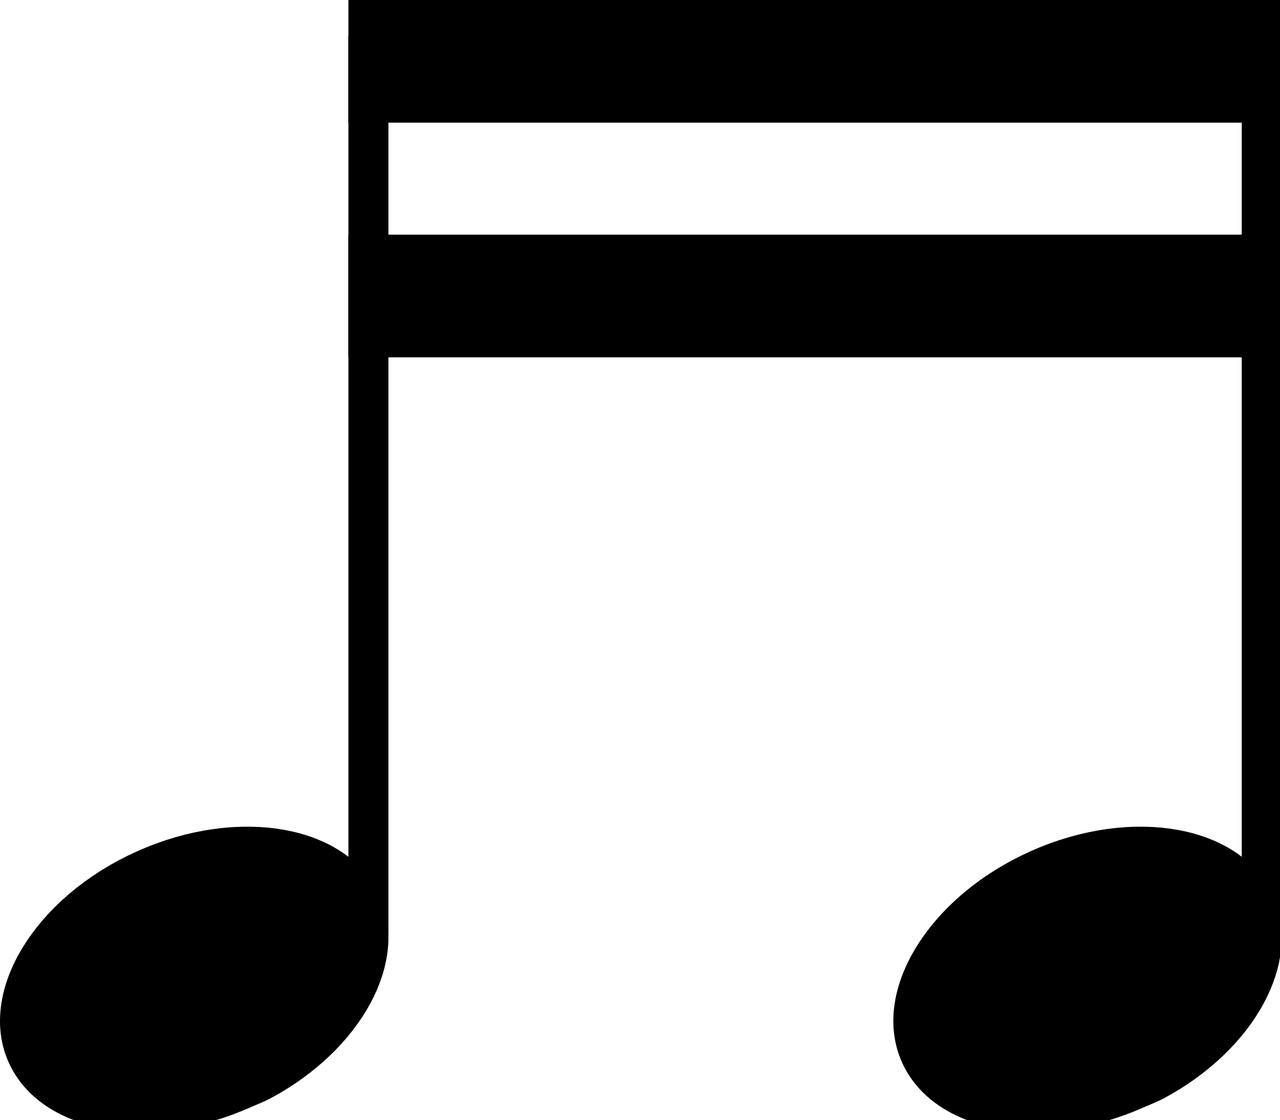 Music Symbols Transparent Png Images Stickpng